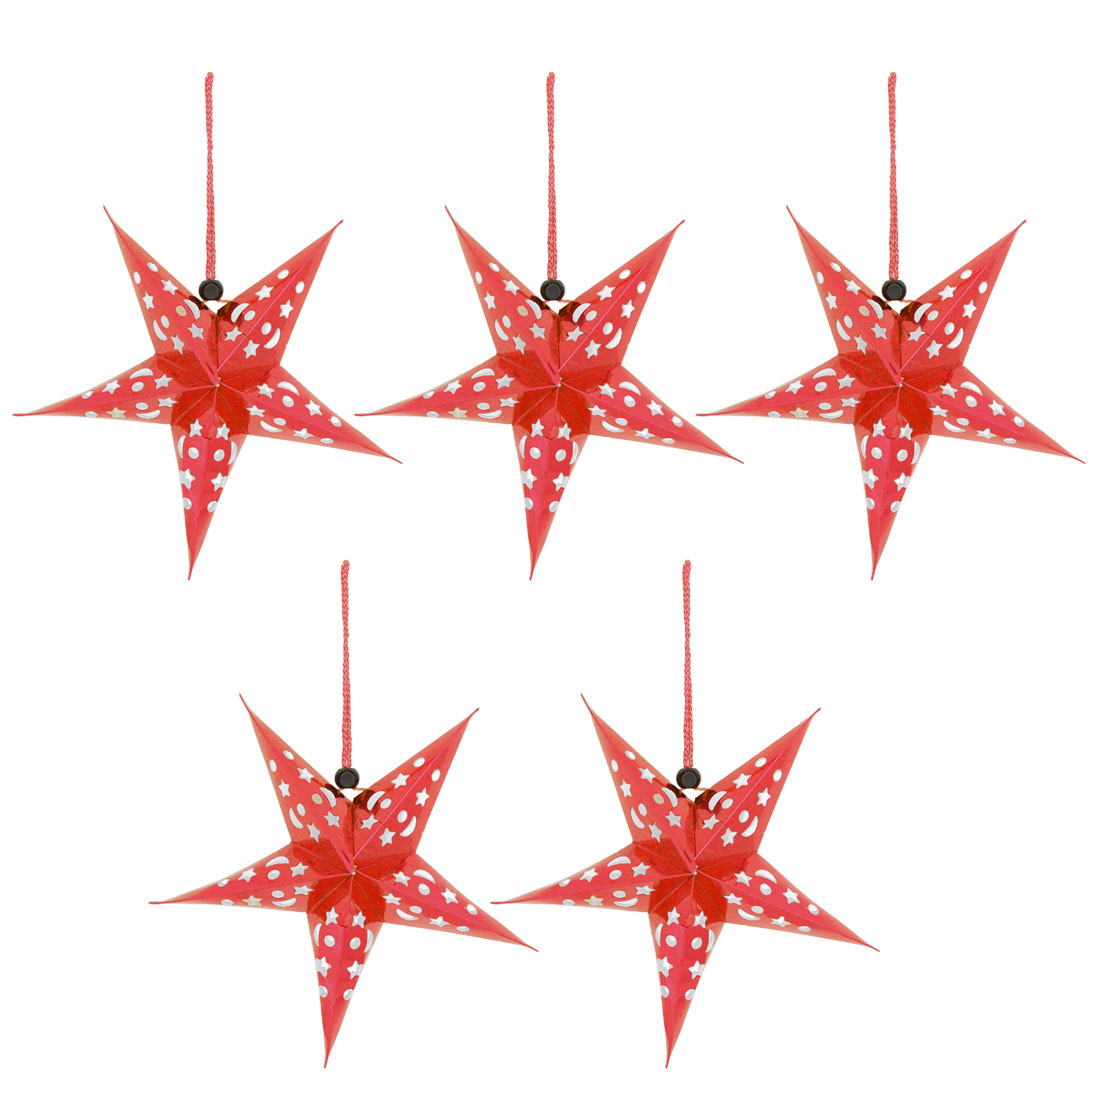 Unique Bargains Christmas Star Designed DIY Handcraft Door Tree Hanging Ornament Red 5pcs